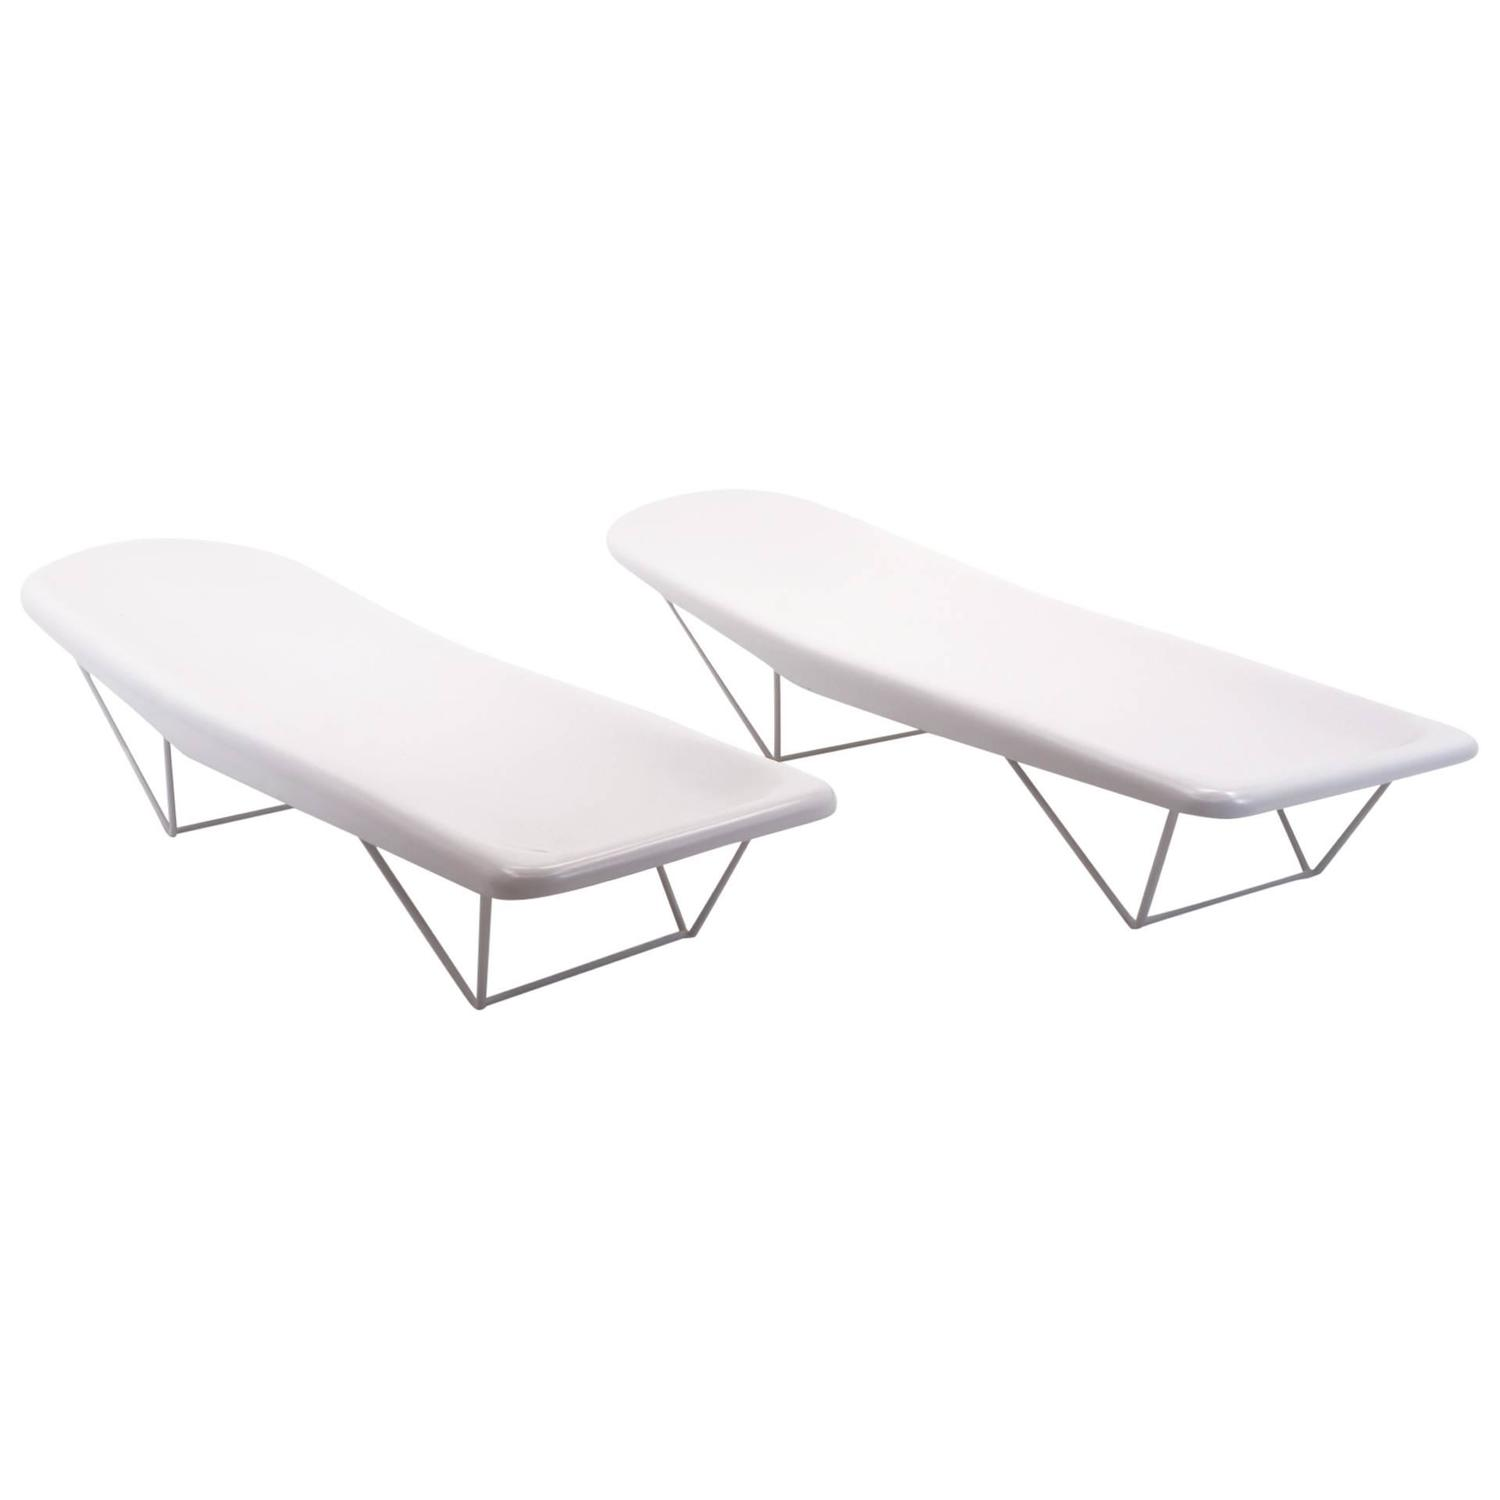 Pair Of 1960s Fiberglass Outdoor Chaise Longue Chairs In